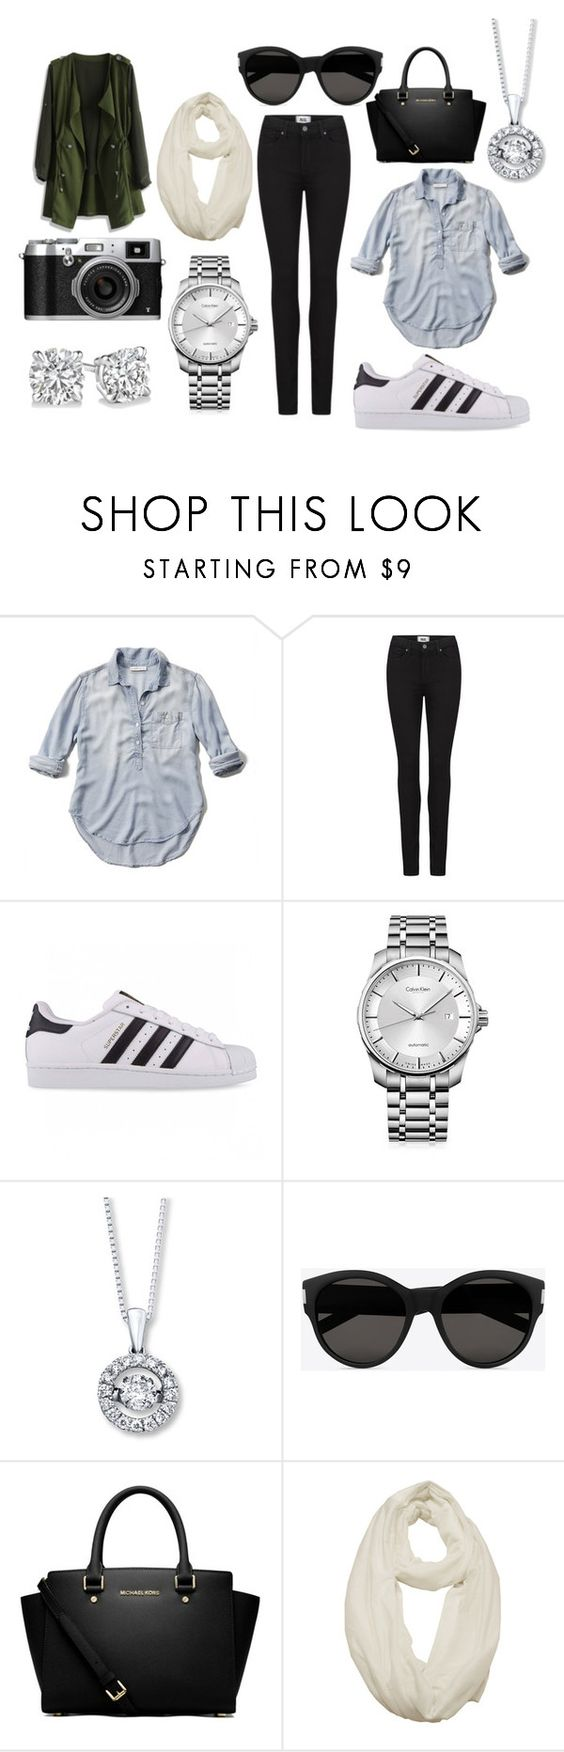 """tour day project 3"" by sarasv on Polyvore featuring Abercrombie & Fitch, Paige Denim, adidas Originals, Calvin Klein, Yves Saint Laurent, MICHAEL Michael Kors and Chicwish"